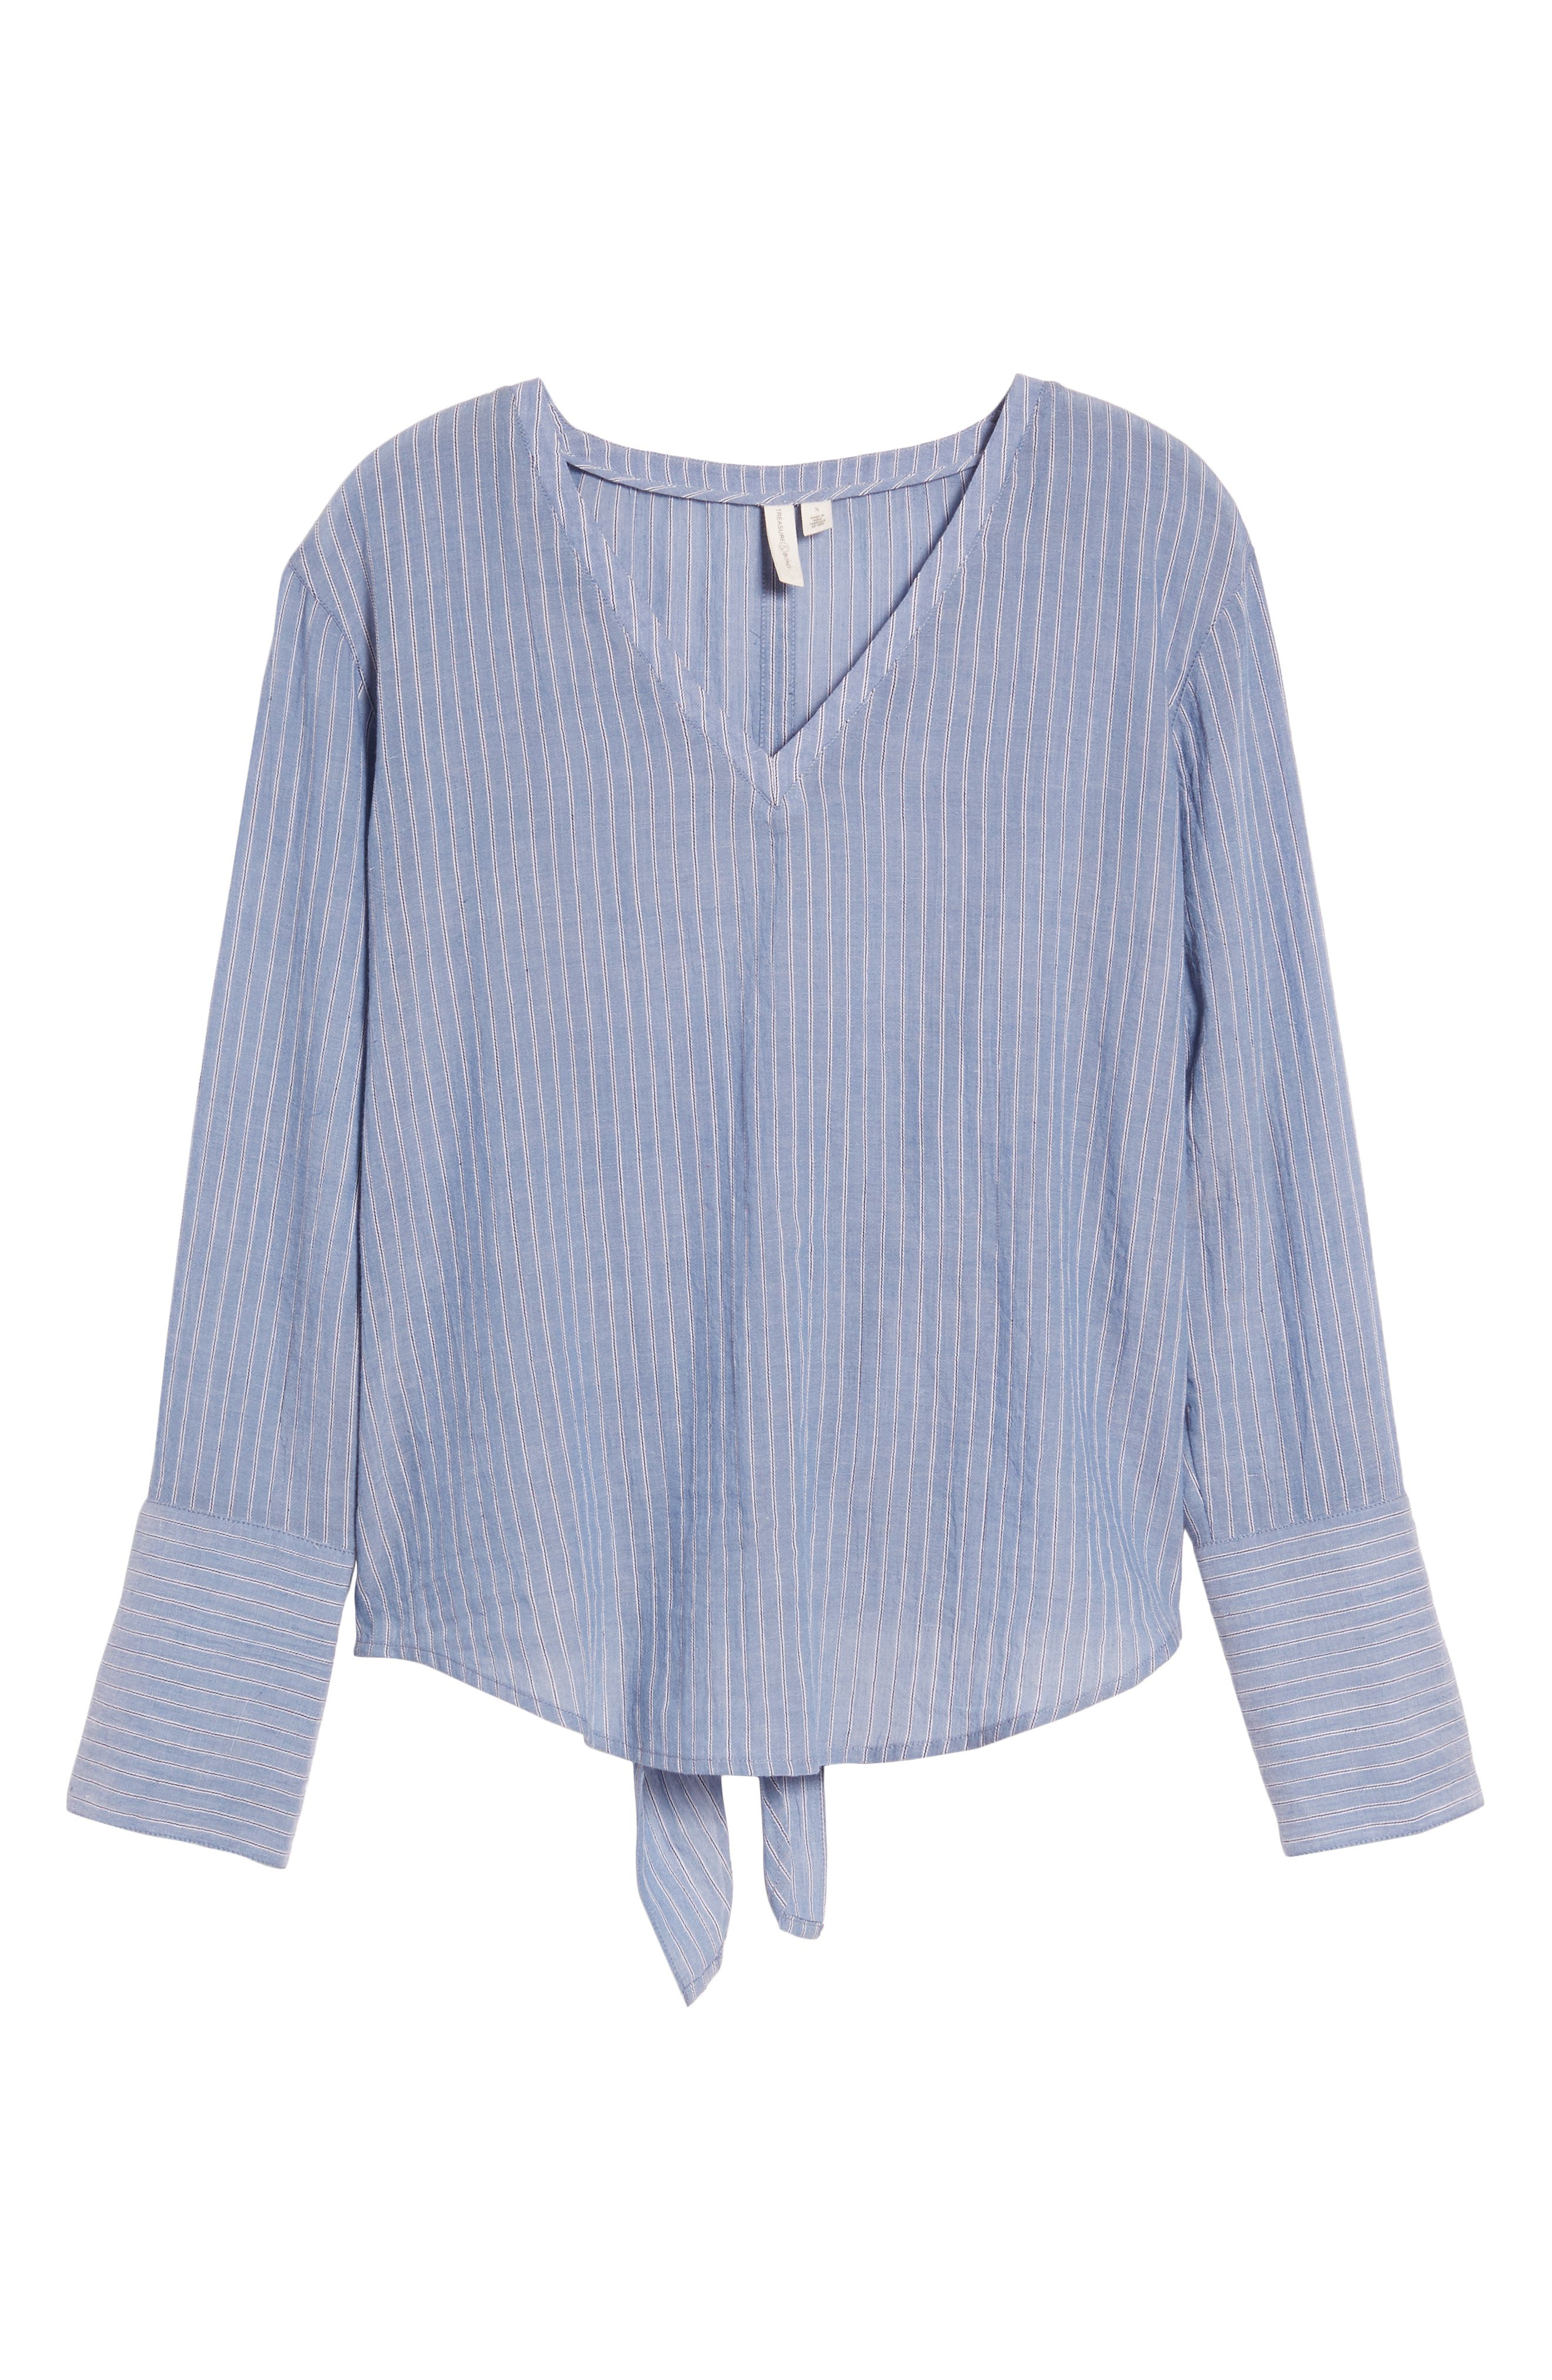 Tie Back Shirt,                             Alternate thumbnail 6, color,                             BLUE AIRY STRIPE